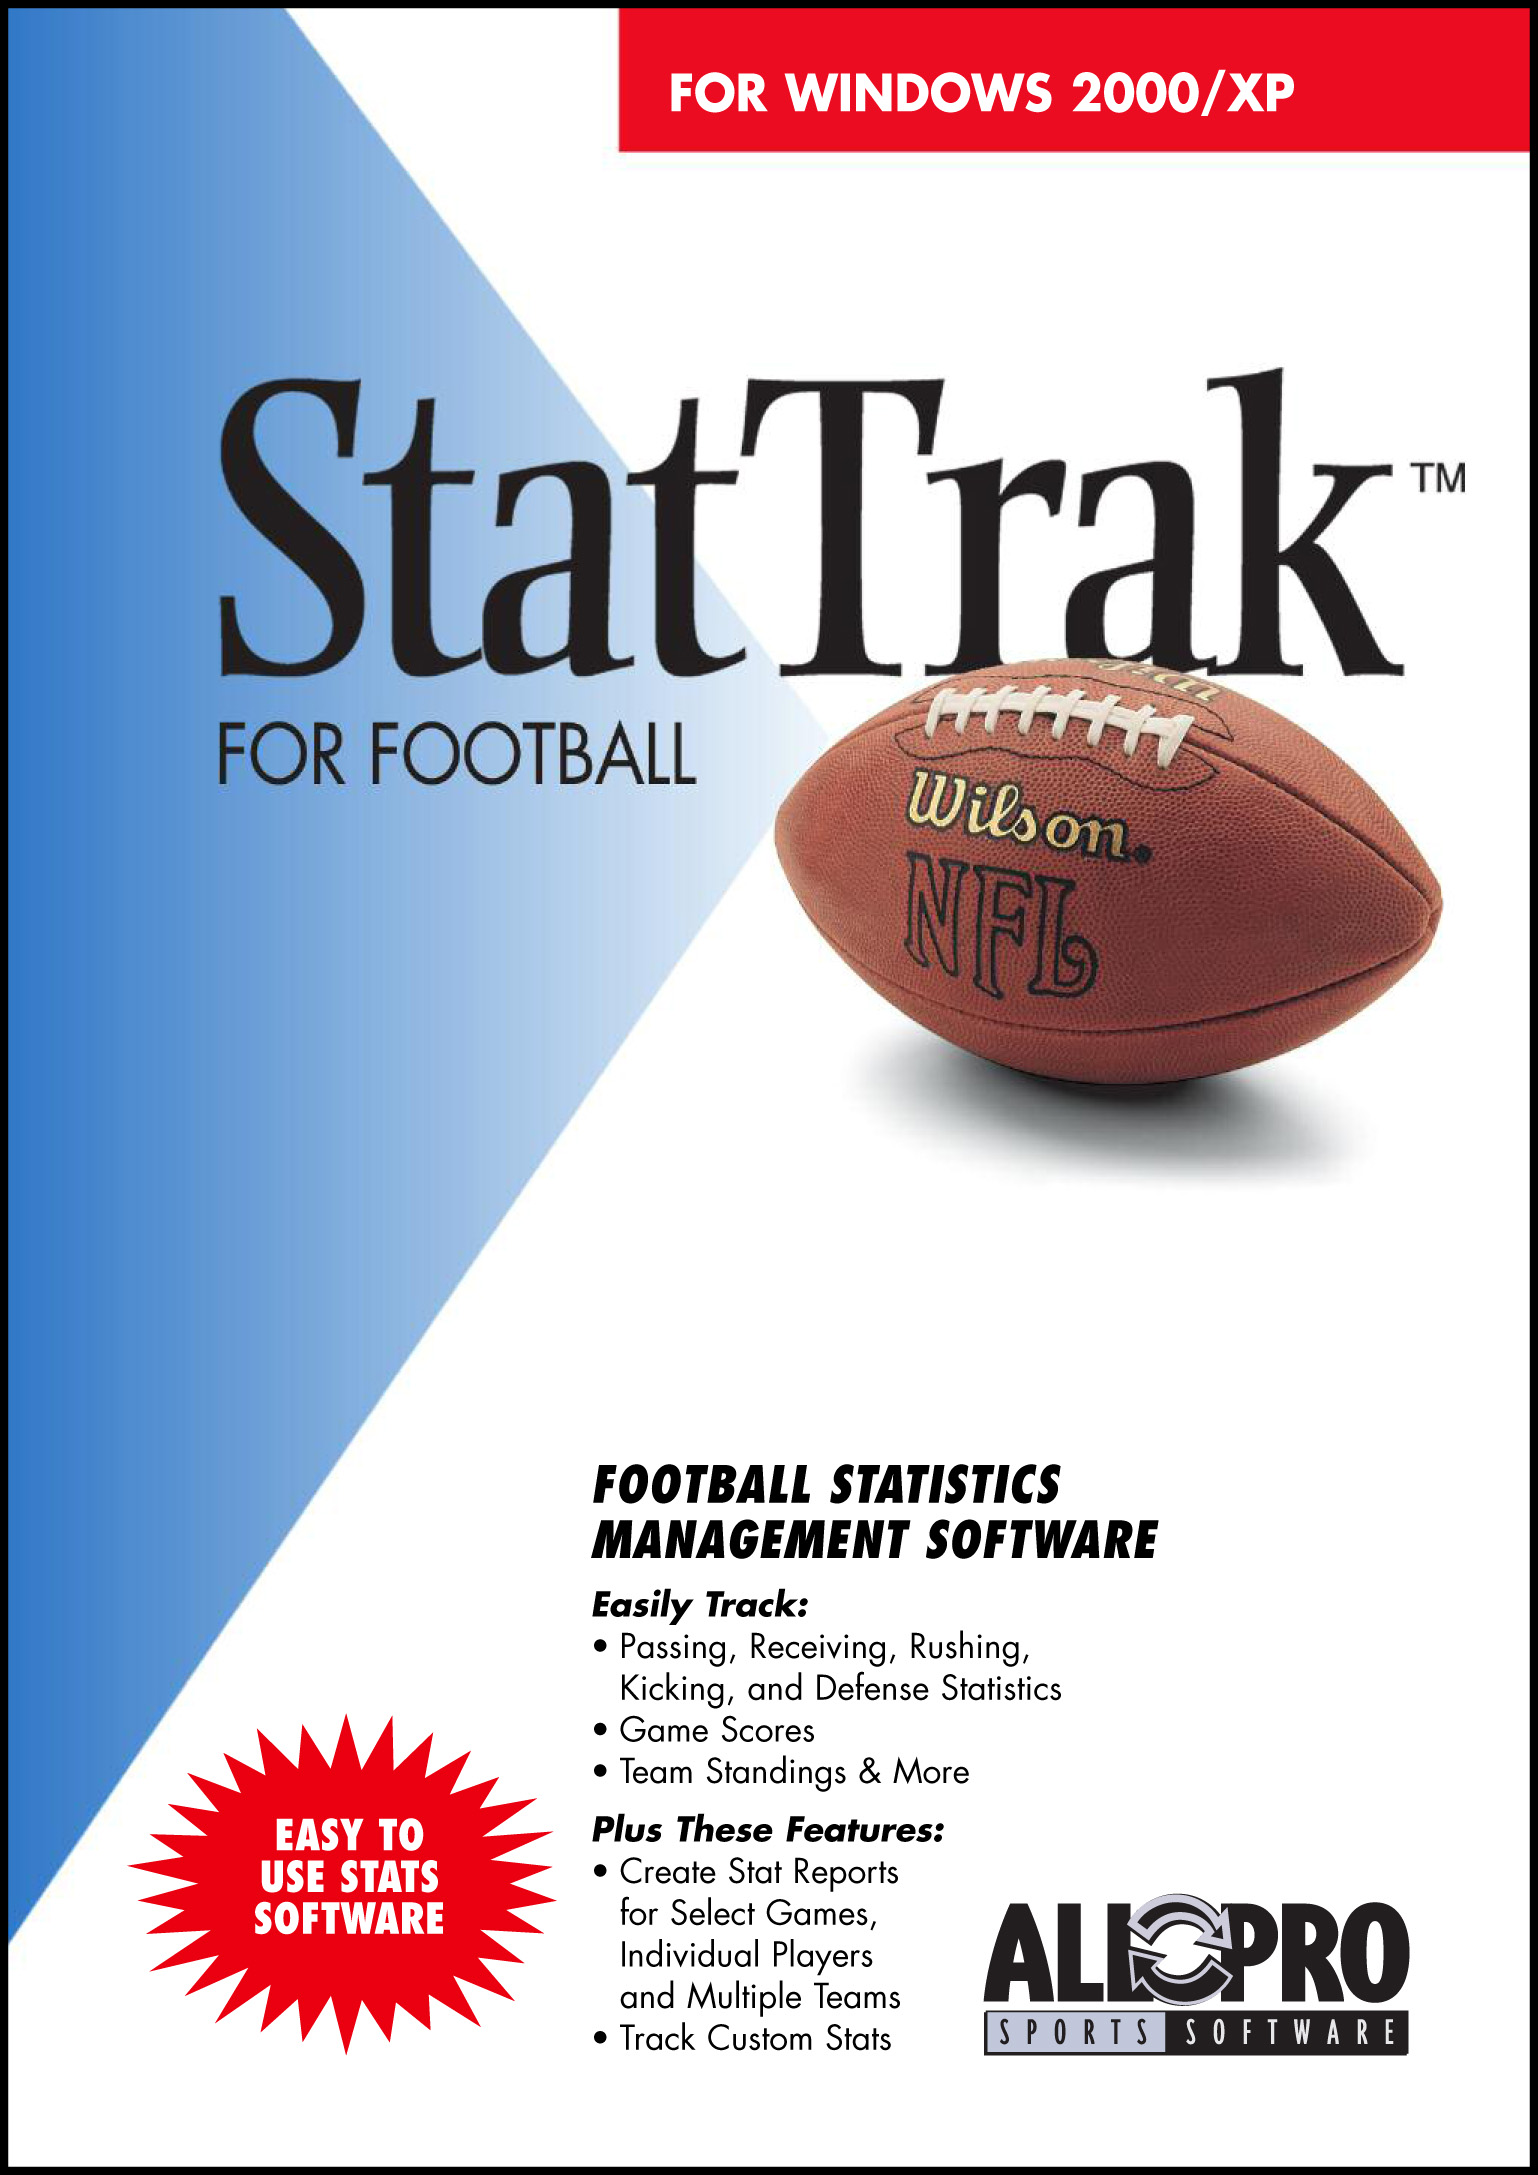 football stats software, stat software, stats software, football software, footb